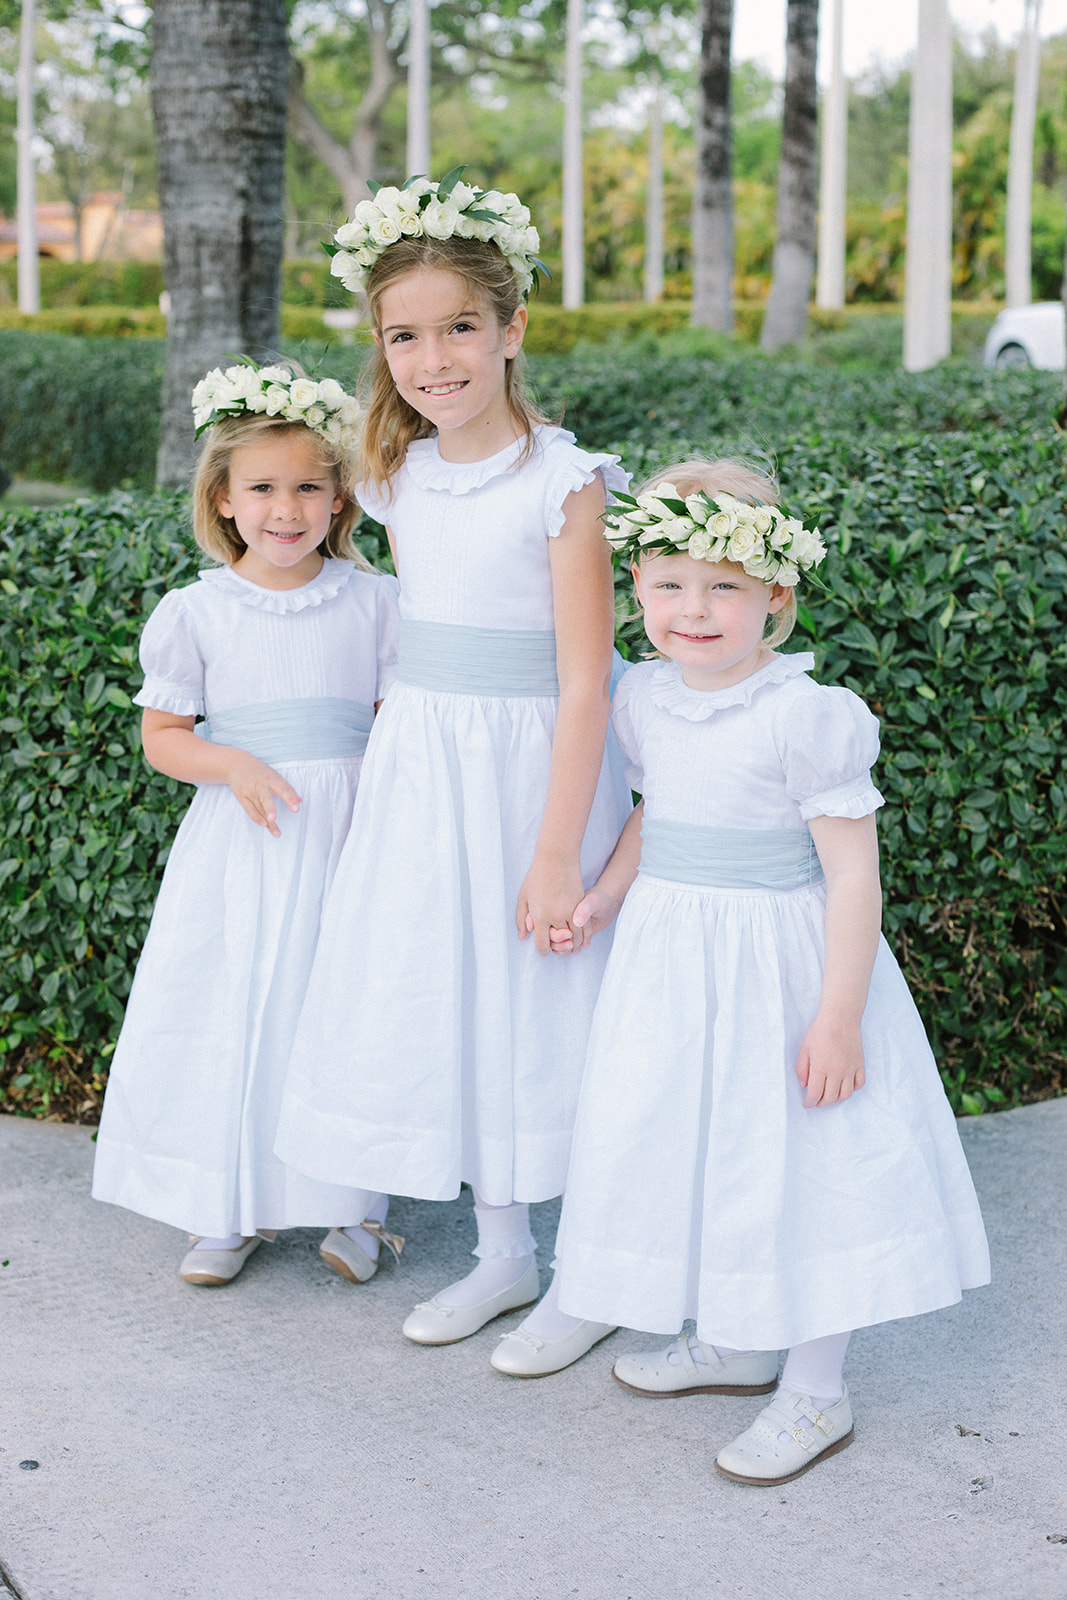 three flower girls wearing white dresses and flower crowns